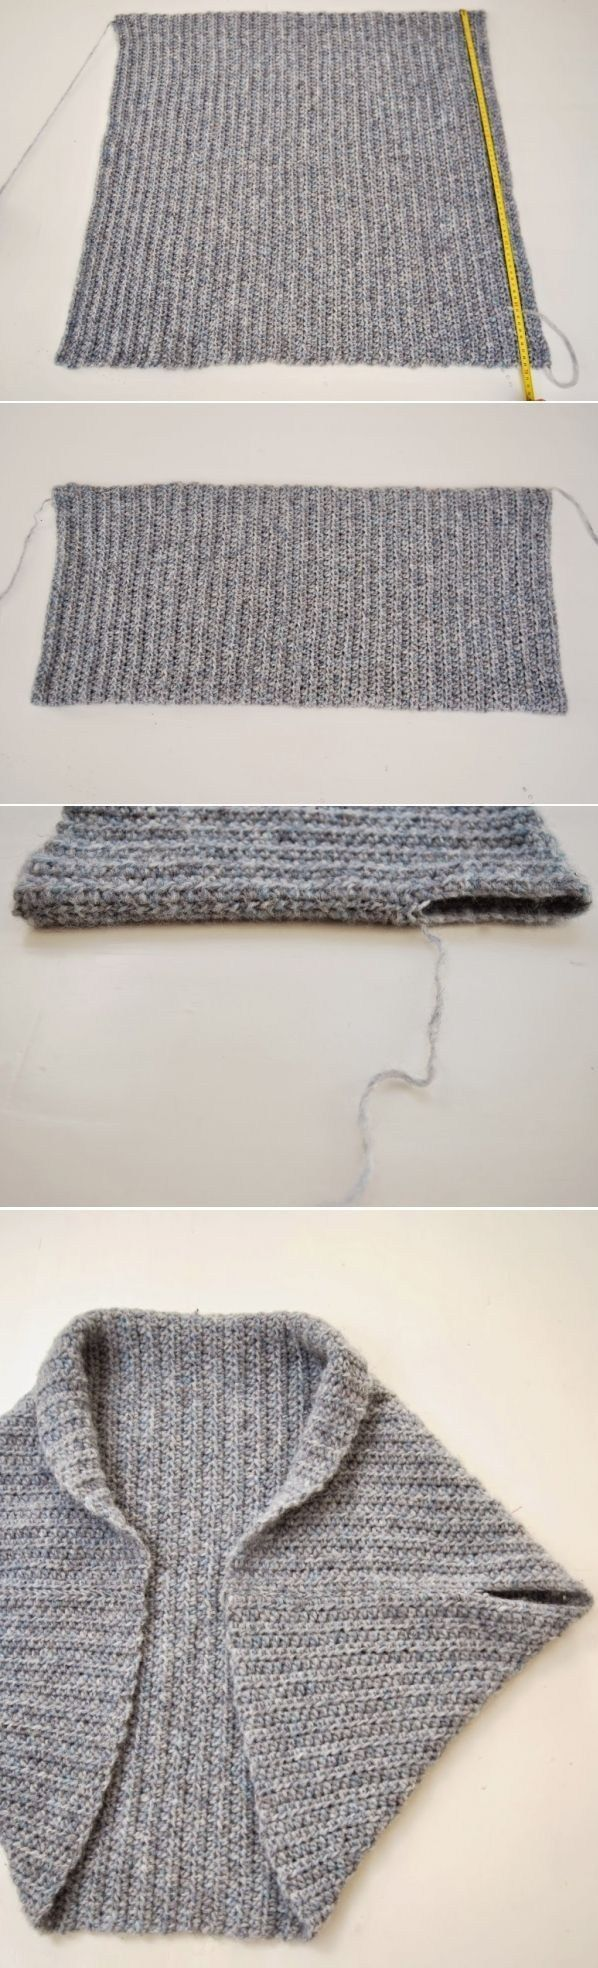 Free knitting pattern for Easy Rectangle Shrug -- just fold and seam